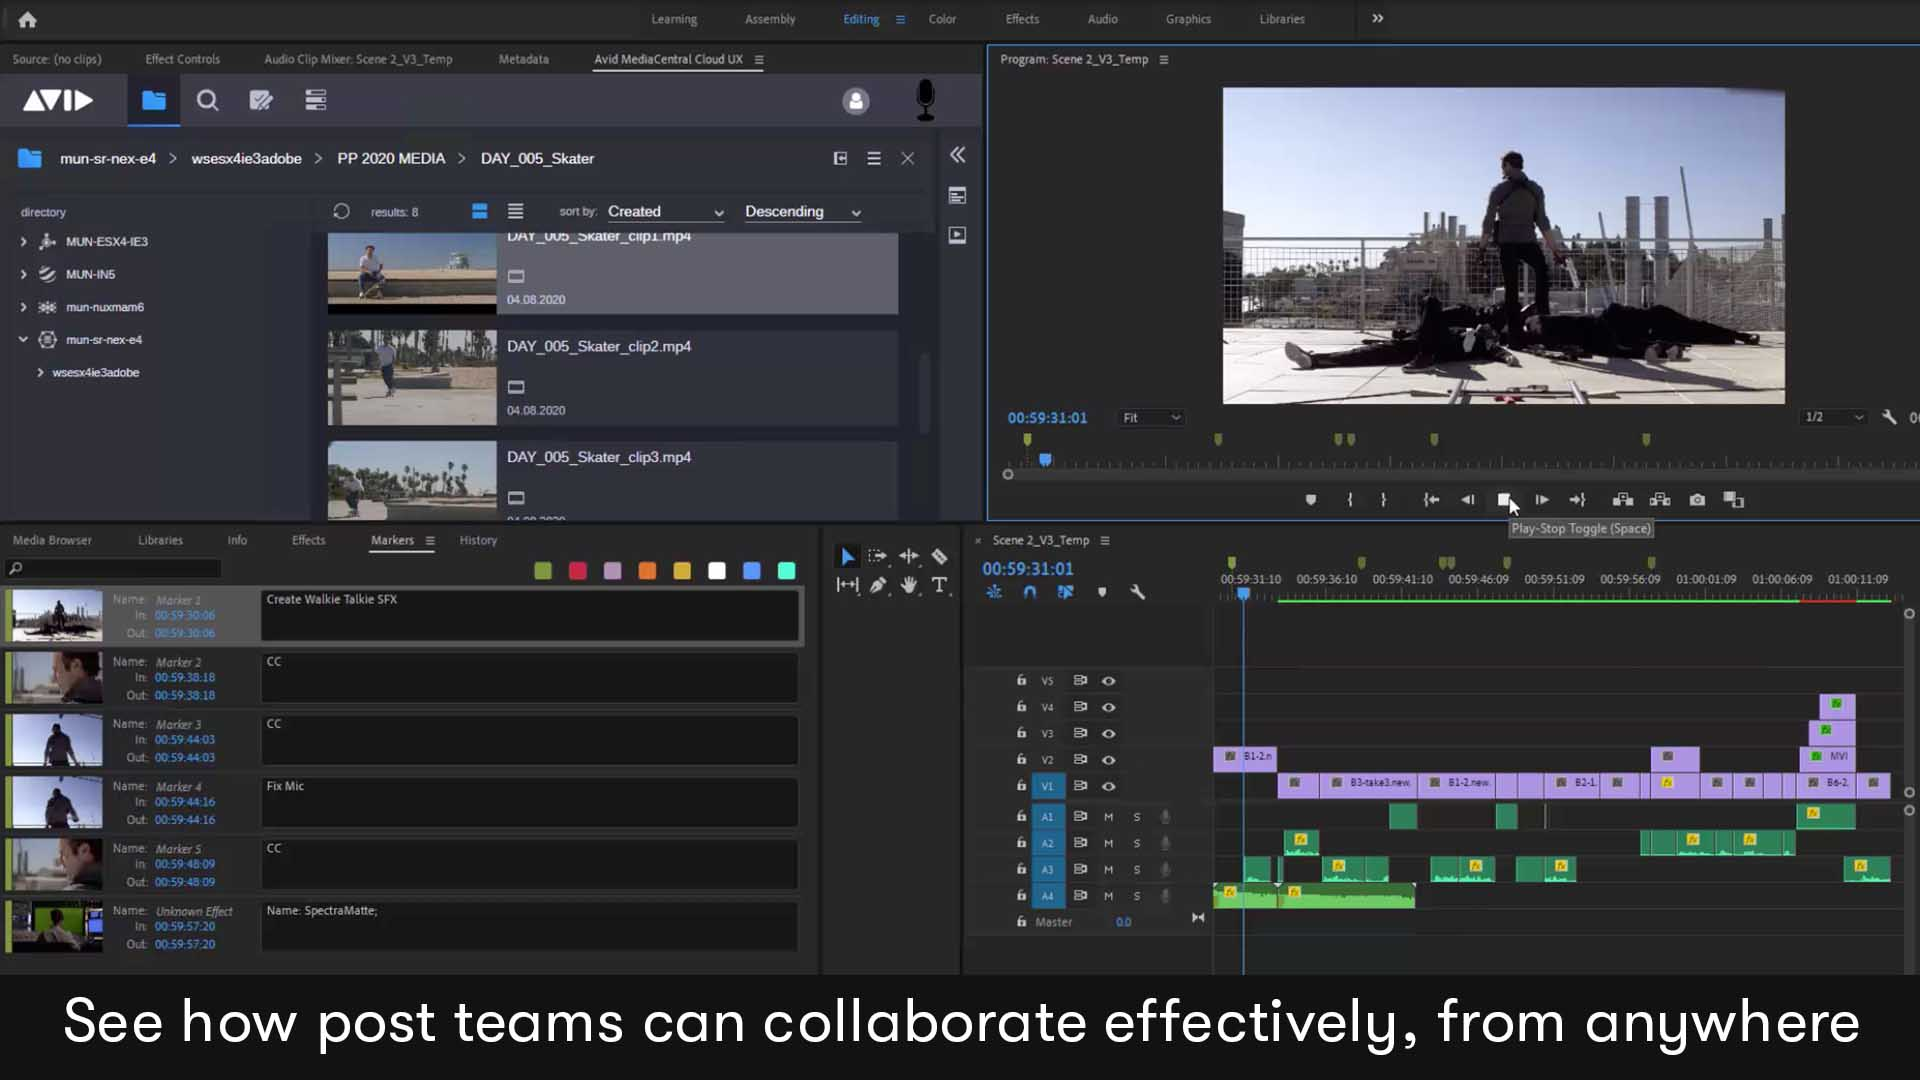 Share Assets Easily In A Premiere Pro Workflow With Avid